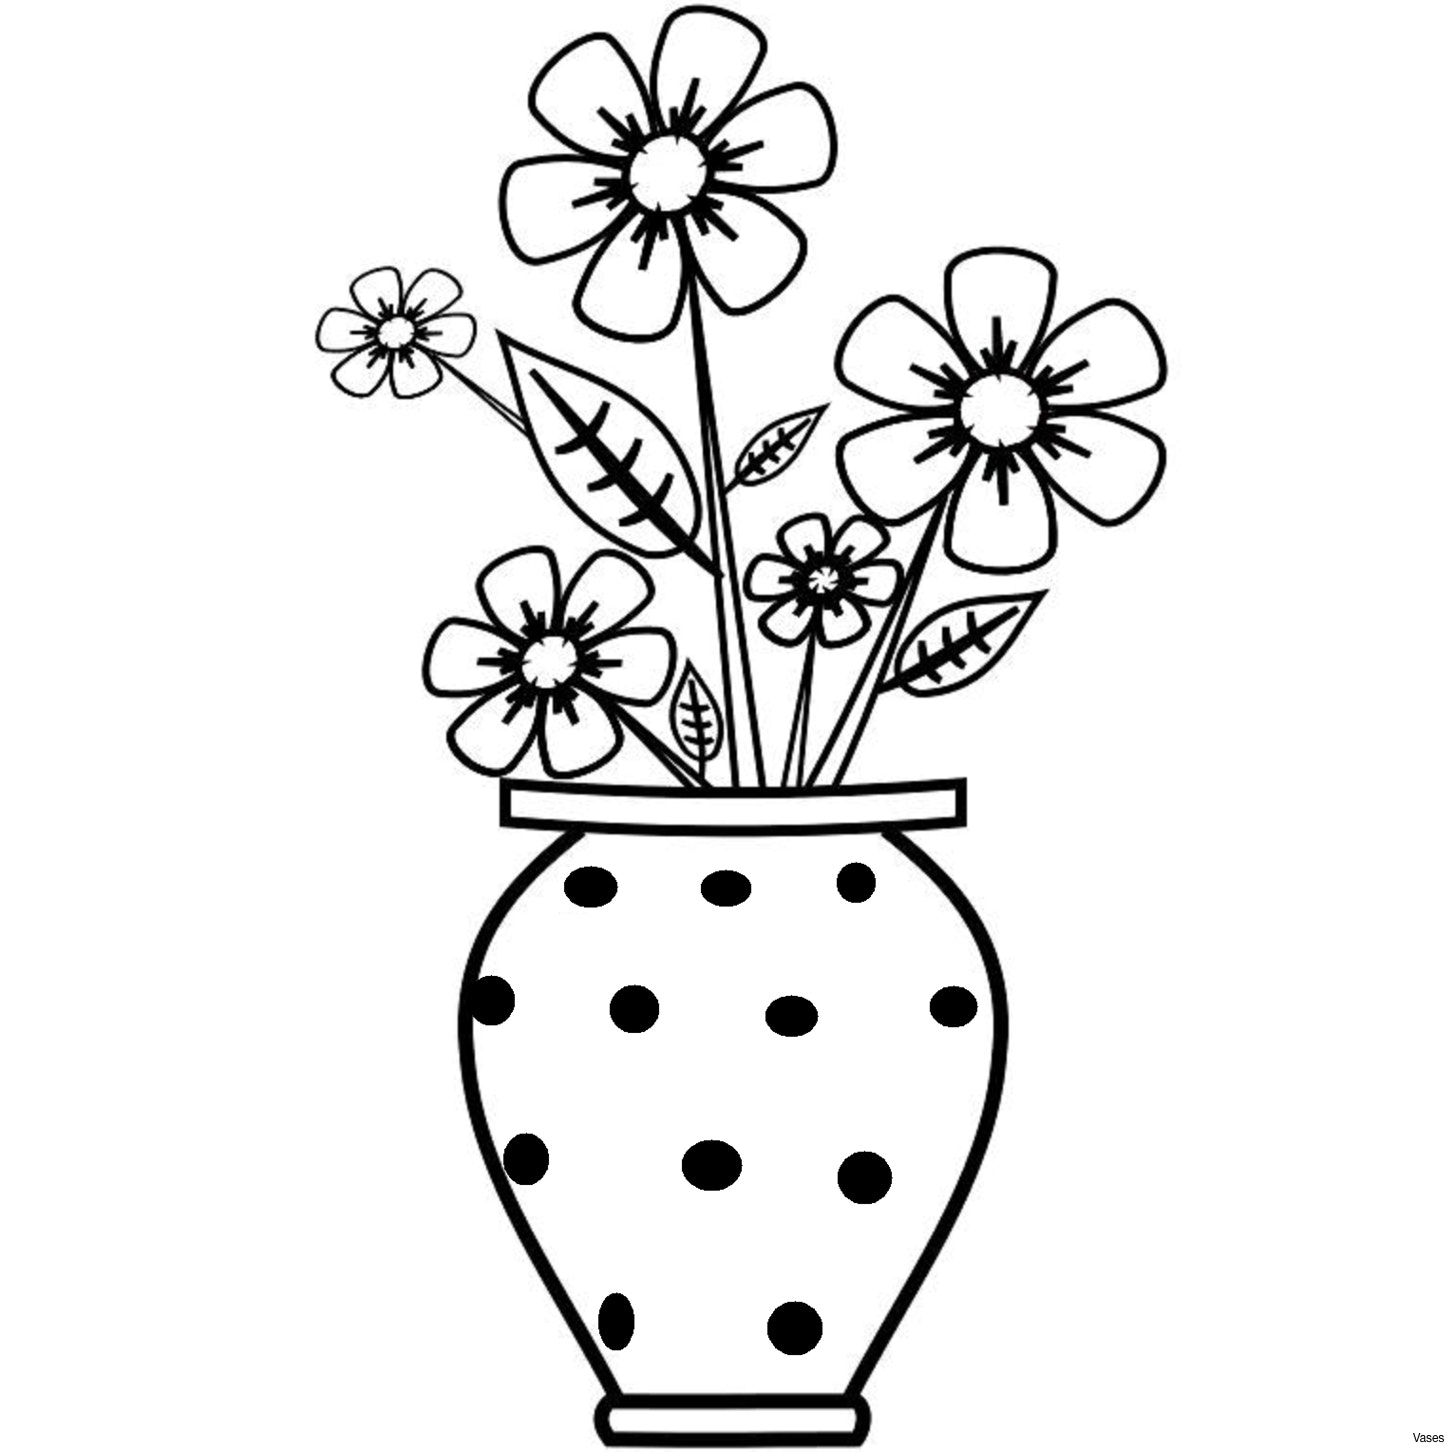 1455x1452 Rose Flower Drawings In Pencil Step By Drawing Artistic Of Vases